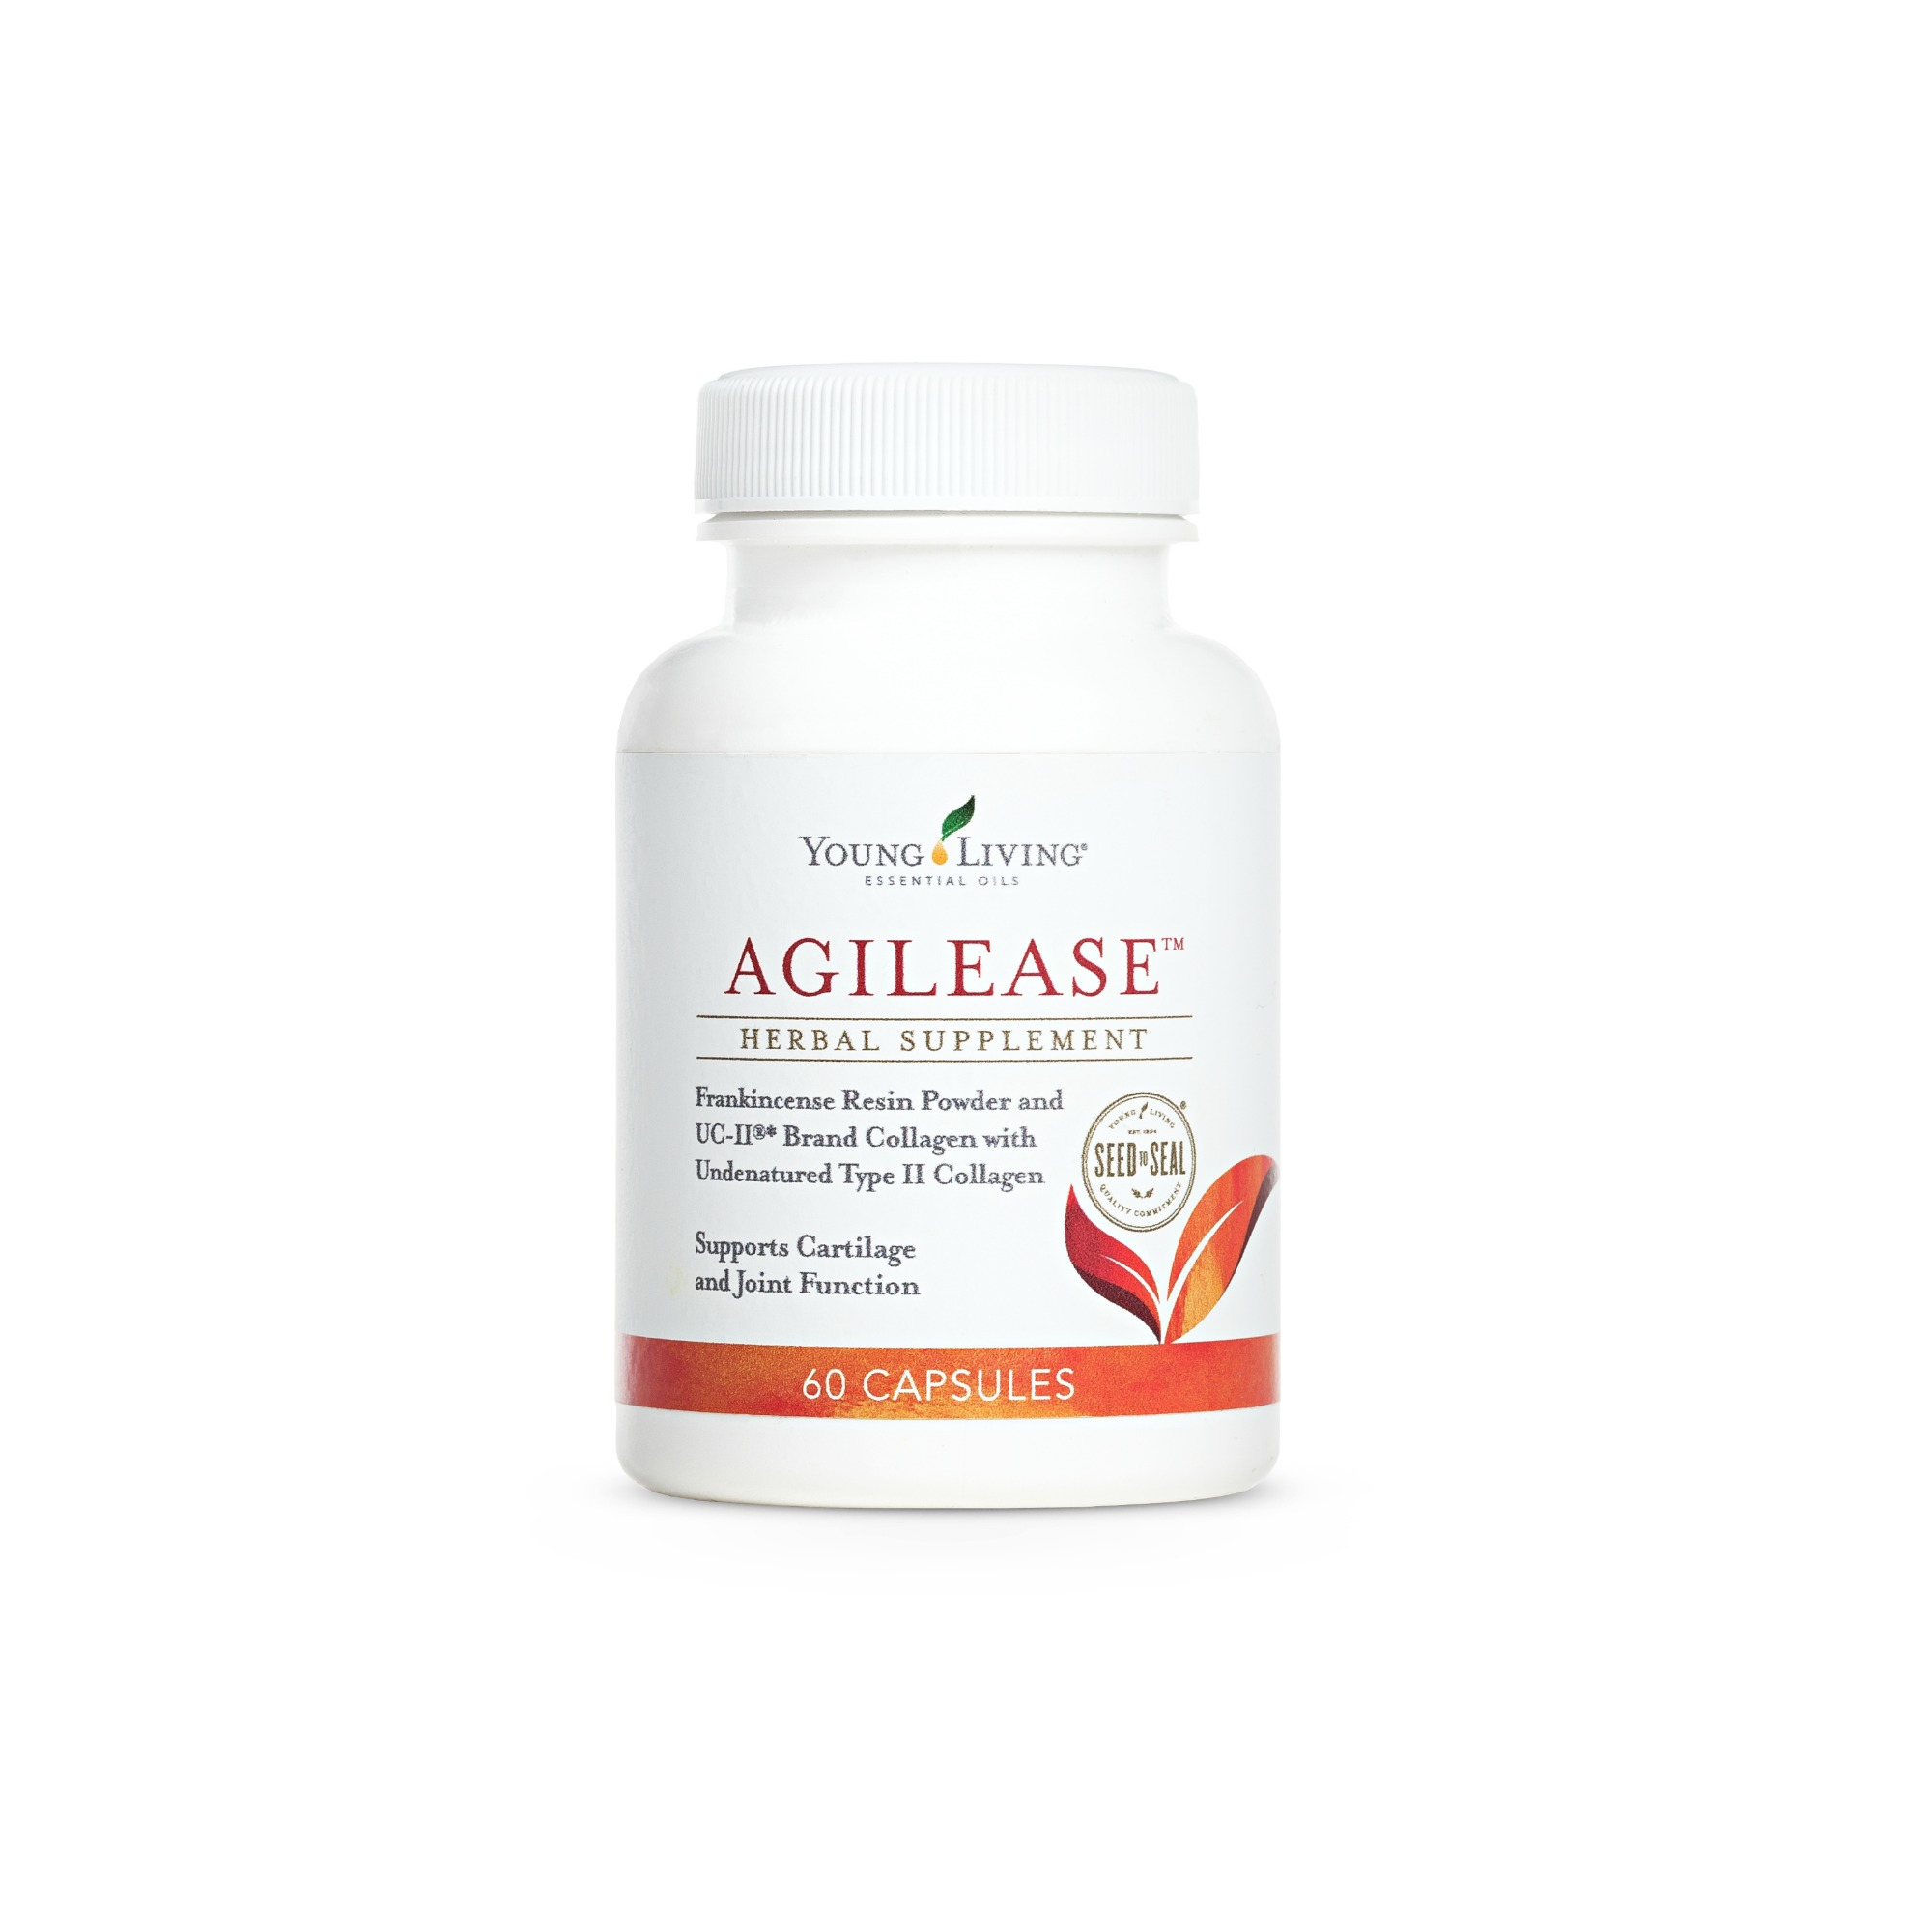 AGILEASE    Especially beneficial for athletes, as well as middle-aged and elderly people who may experience a natural, acute inflammation response in their joints after exercise, AgilEase is a joint health supplement that's perfect for healthy individuals who are looking to gain greater mobility and flexibility through the reduction of inflammation. Contains frankincense powder, UC-II undenatured collagen, hyaluronic acid, calcium fructoborate, and essential oils that are known for their joint health benefits.   Click here   to learn more about this product.